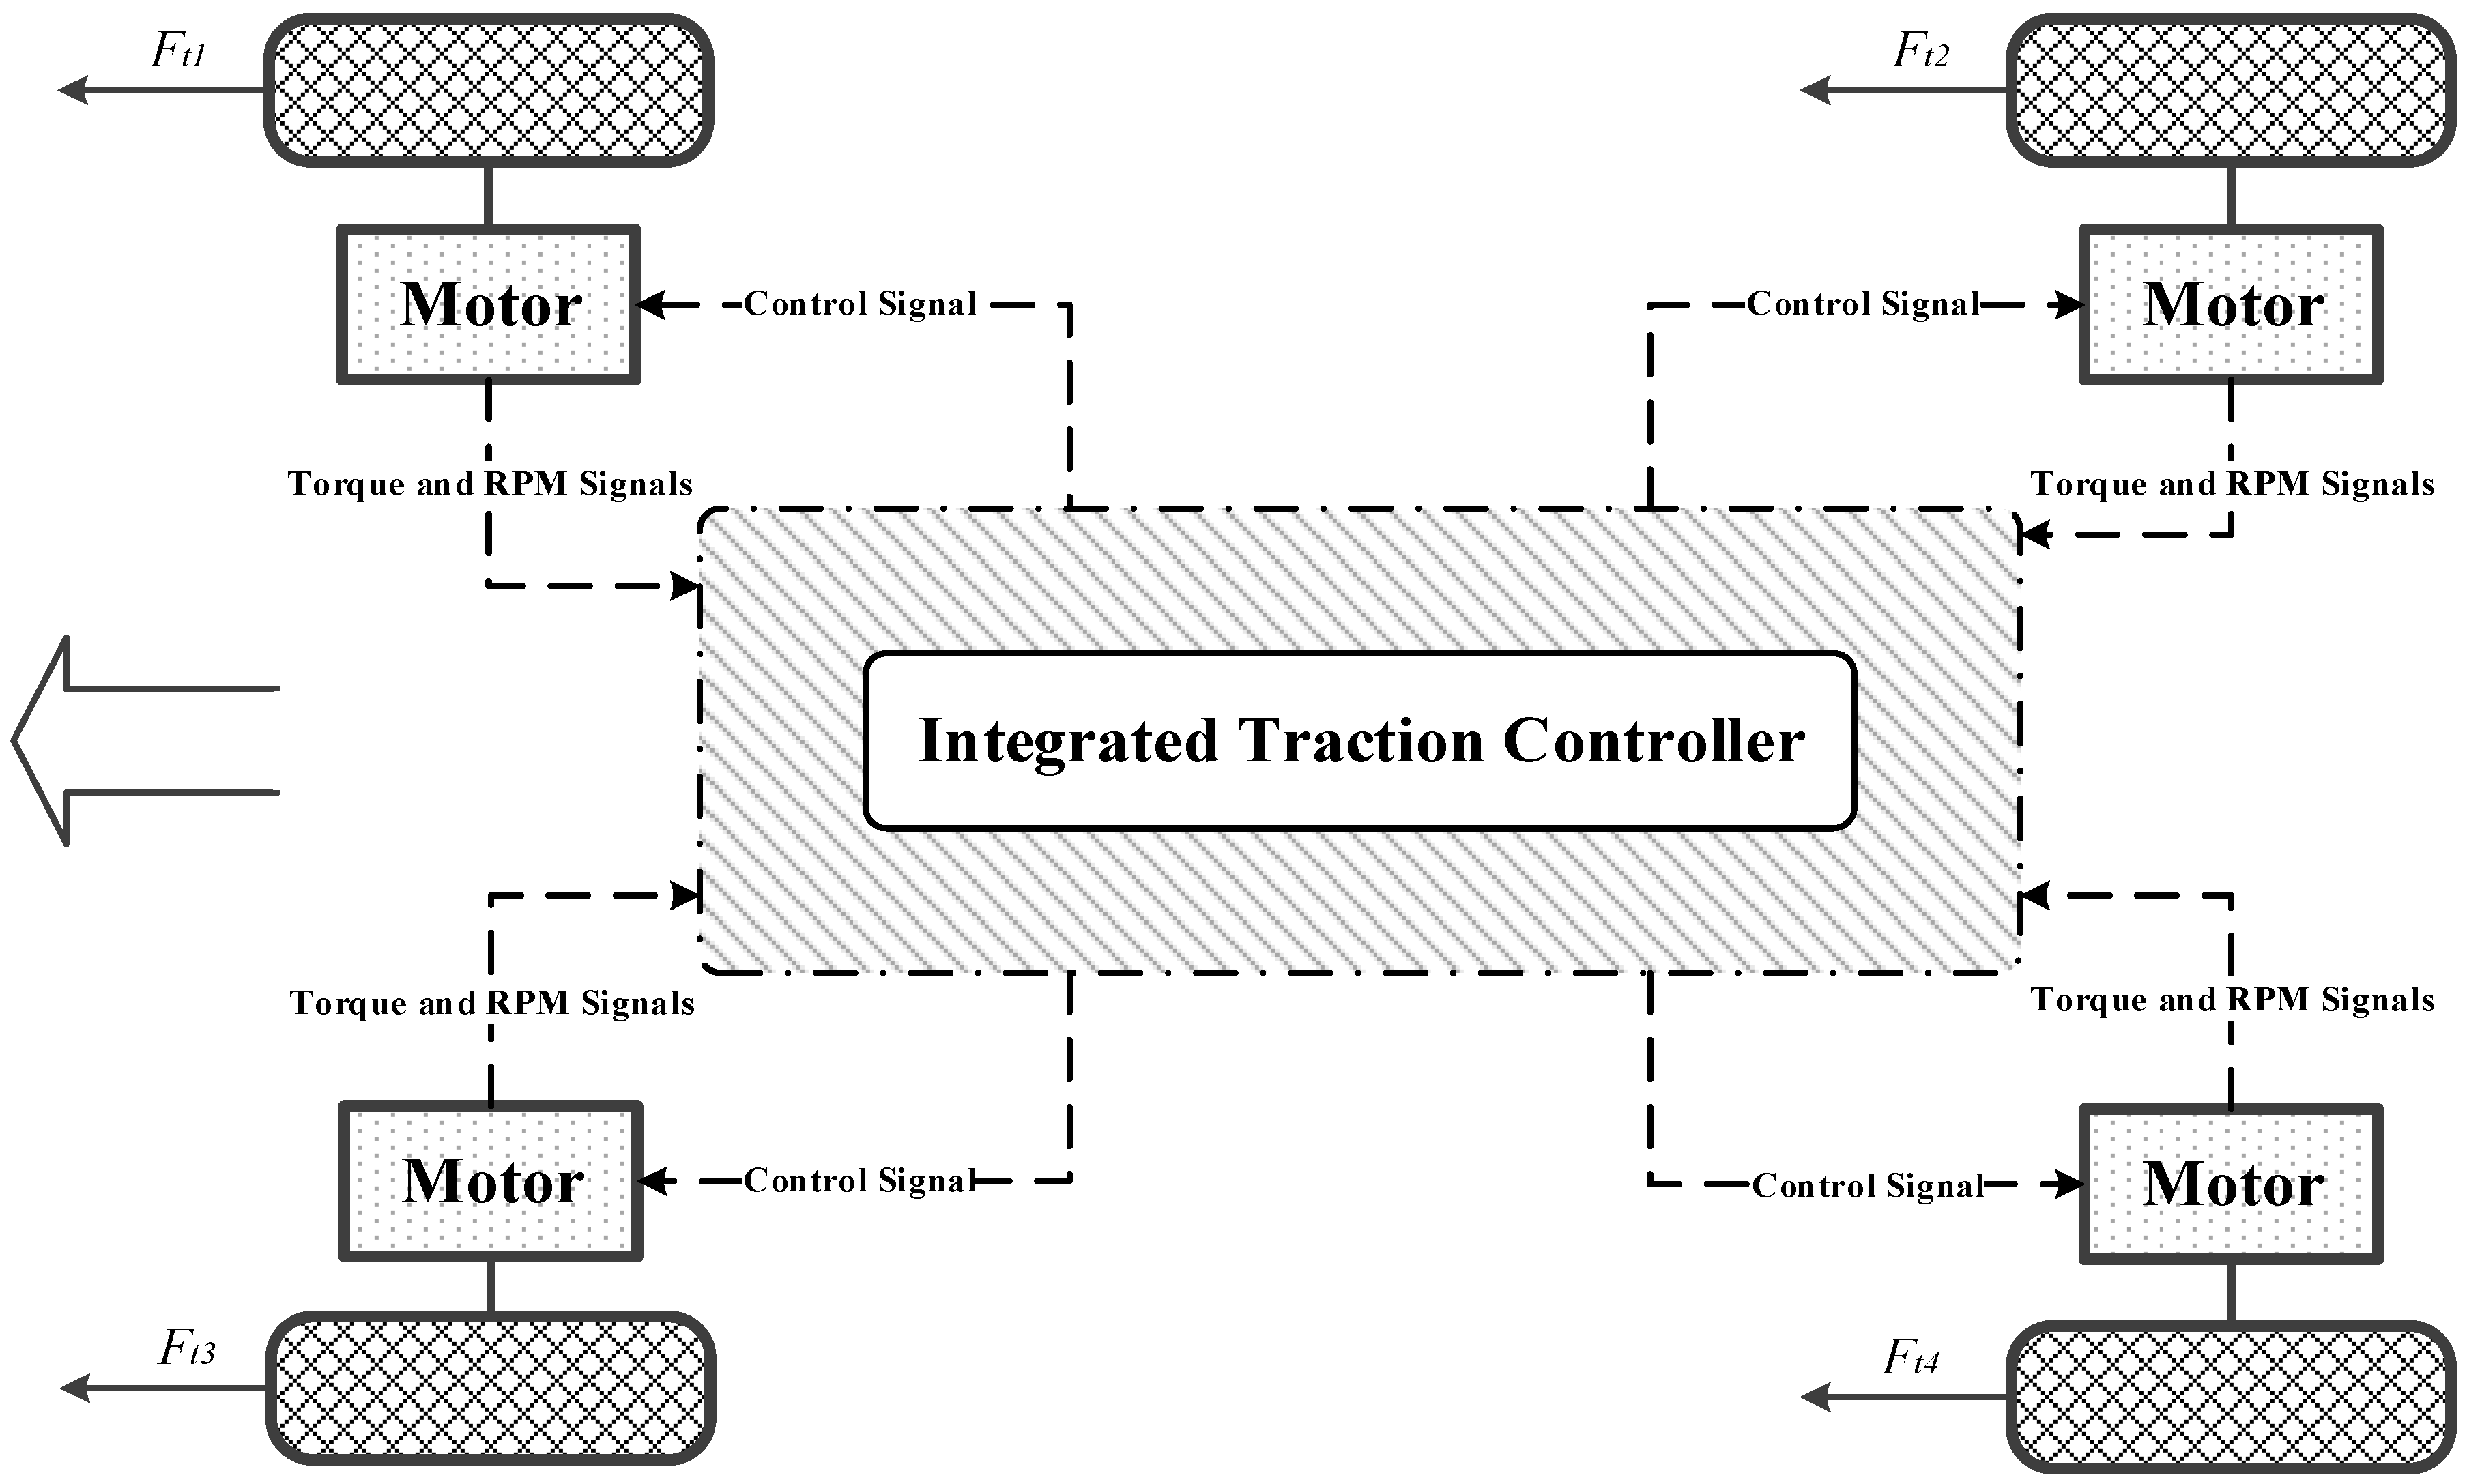 reading wiring diagrams porche html with Control System Diagram on Control System Diagram besides